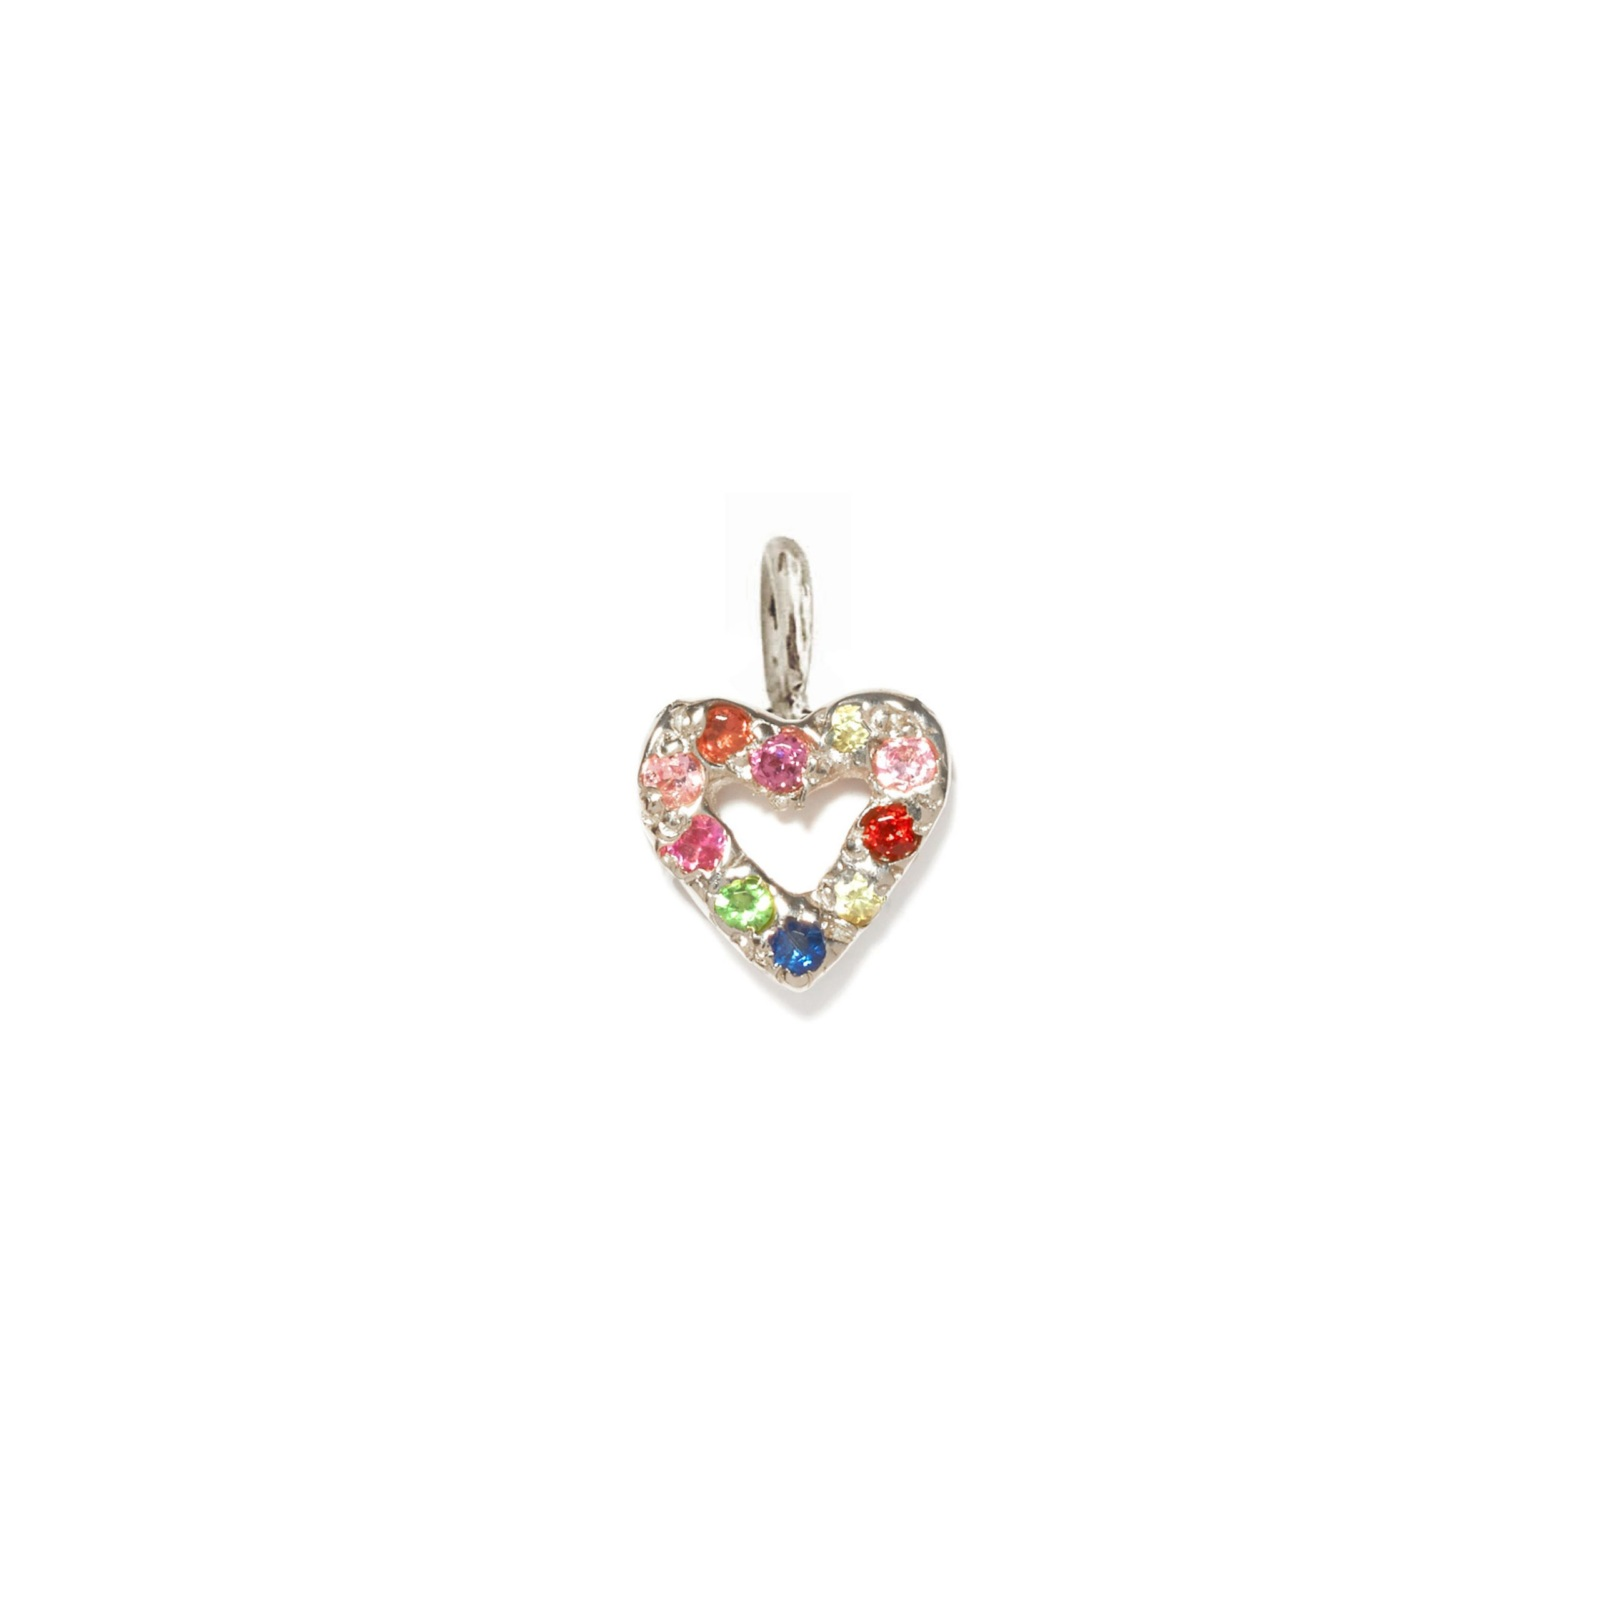 Heart Charm Jewel Collection 14k White Gold